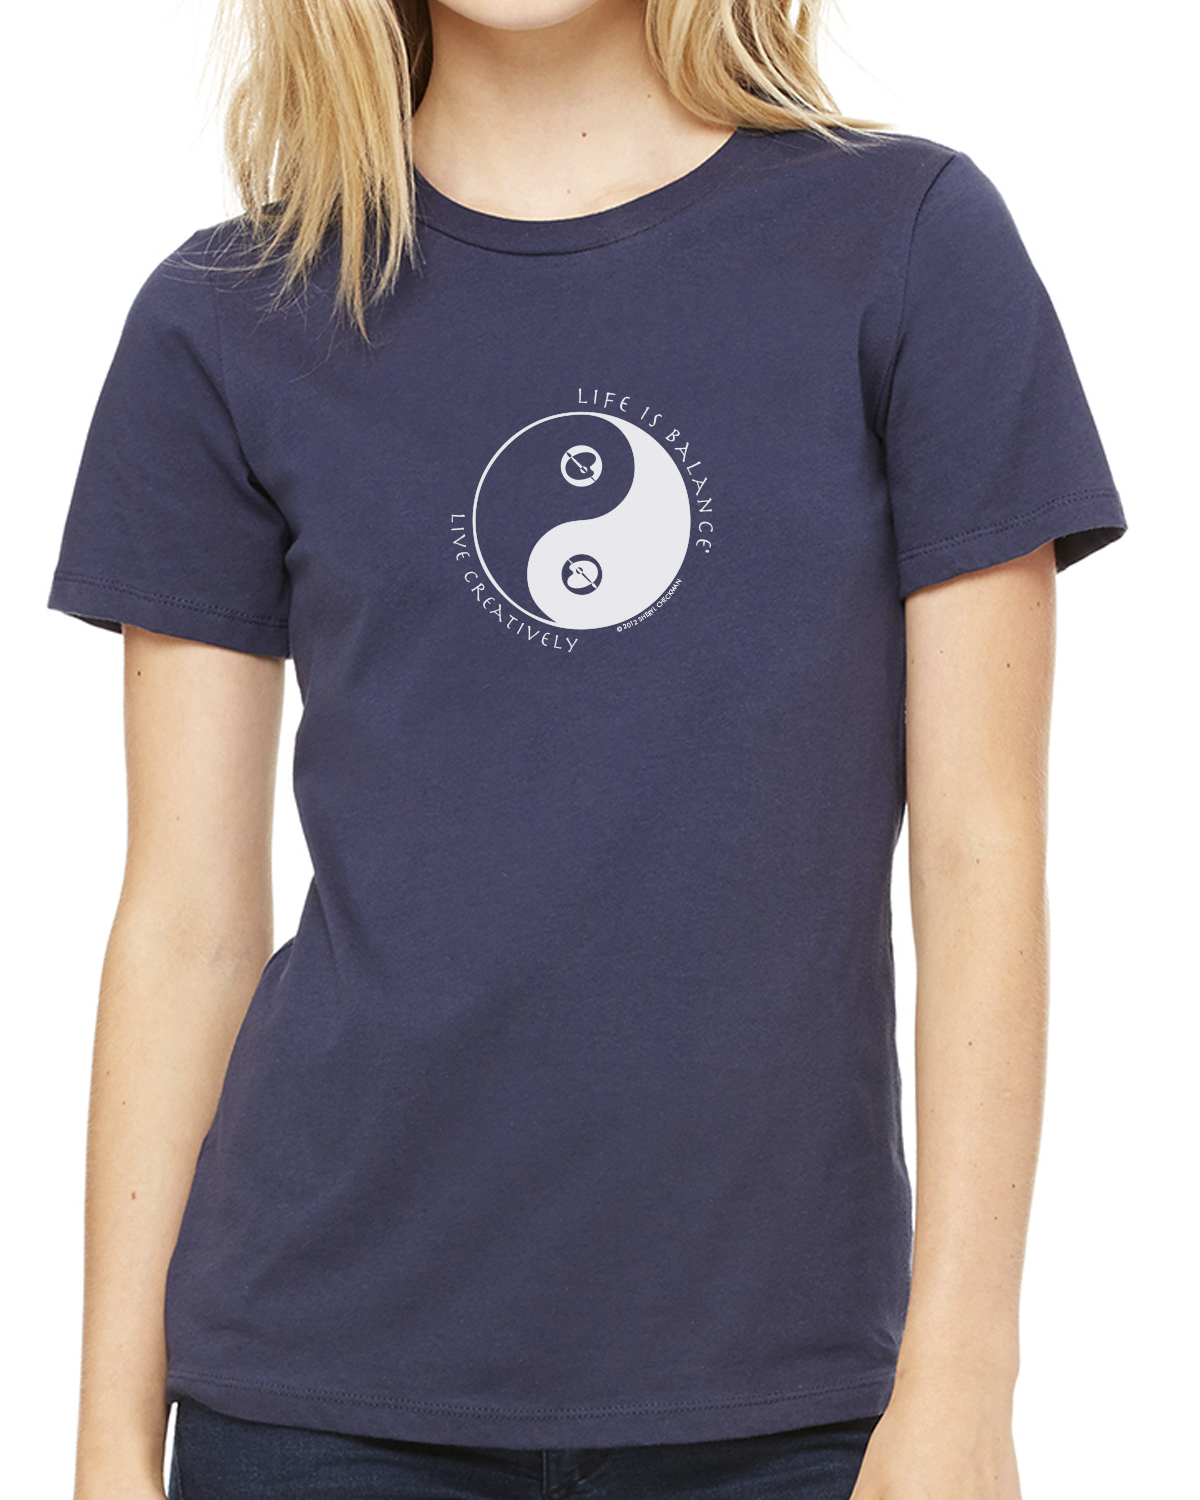 Women's short sleeve artist t-shirt (navy)